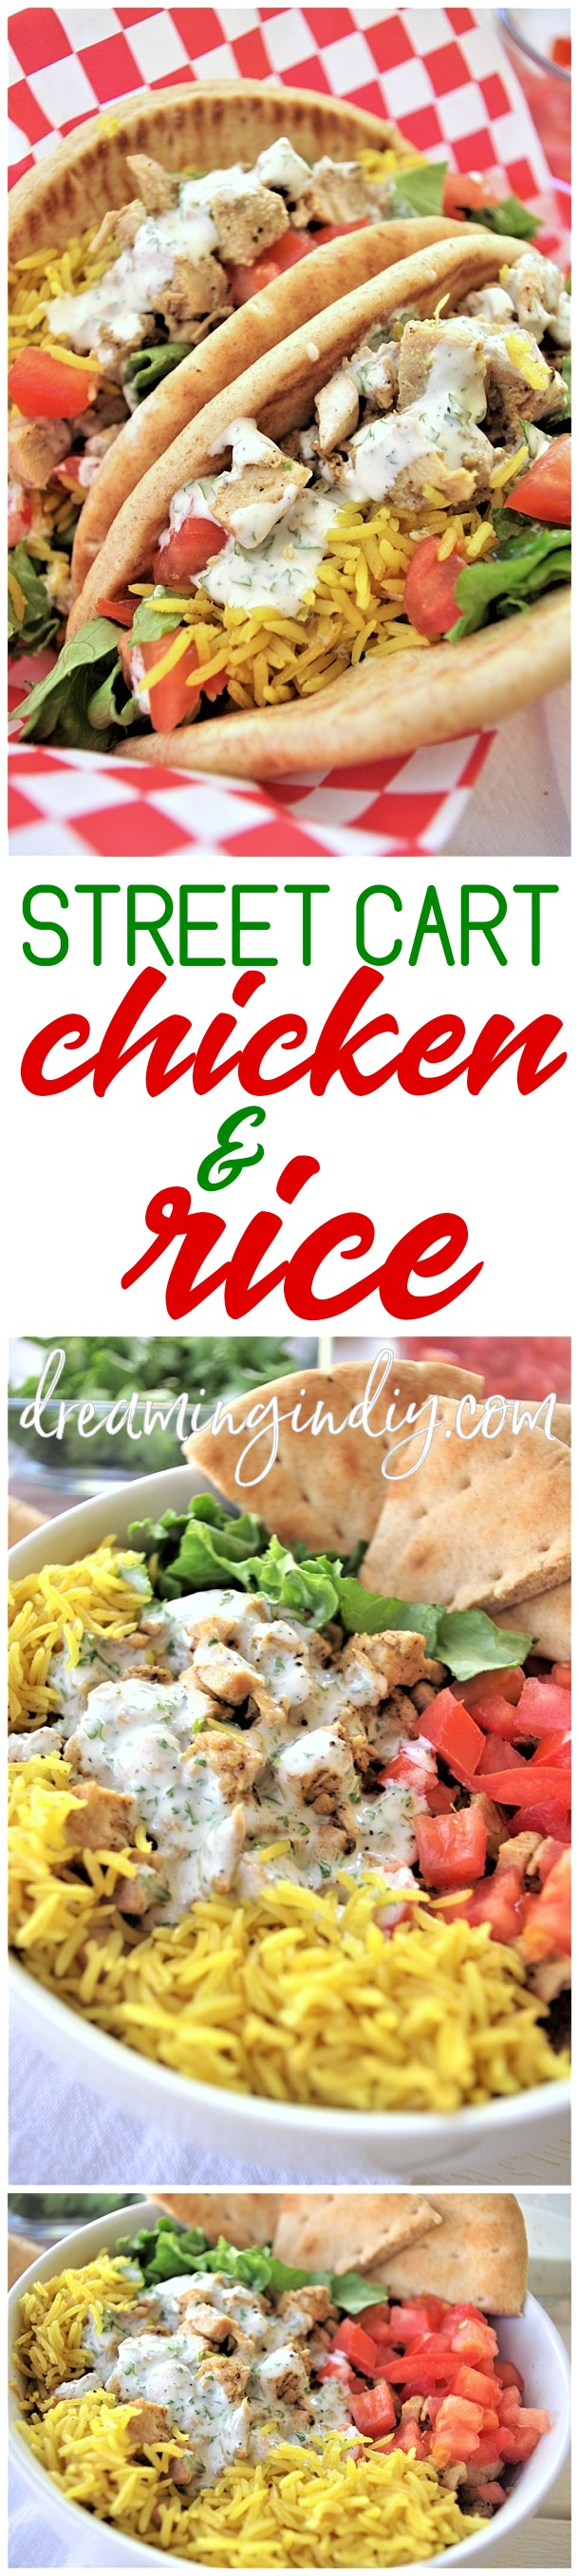 Easy and Delicious Street Cart Mediterranean Chicken and Rice Bowls or Pitas Sandwich Quick and Simple Recipes via Dreaming in DIY - This street vendor cart style chicken and rice recipe is PACKED with amazing Mediterranean flavors! #streetcartfood #streetcartchickenandrice #yellowrice #halalchickenandrice #halalstyle #halal #chickenandrice #chickenrecipes #streetcartstylefood #cookout #partyfood #summerfood #chicken #rice